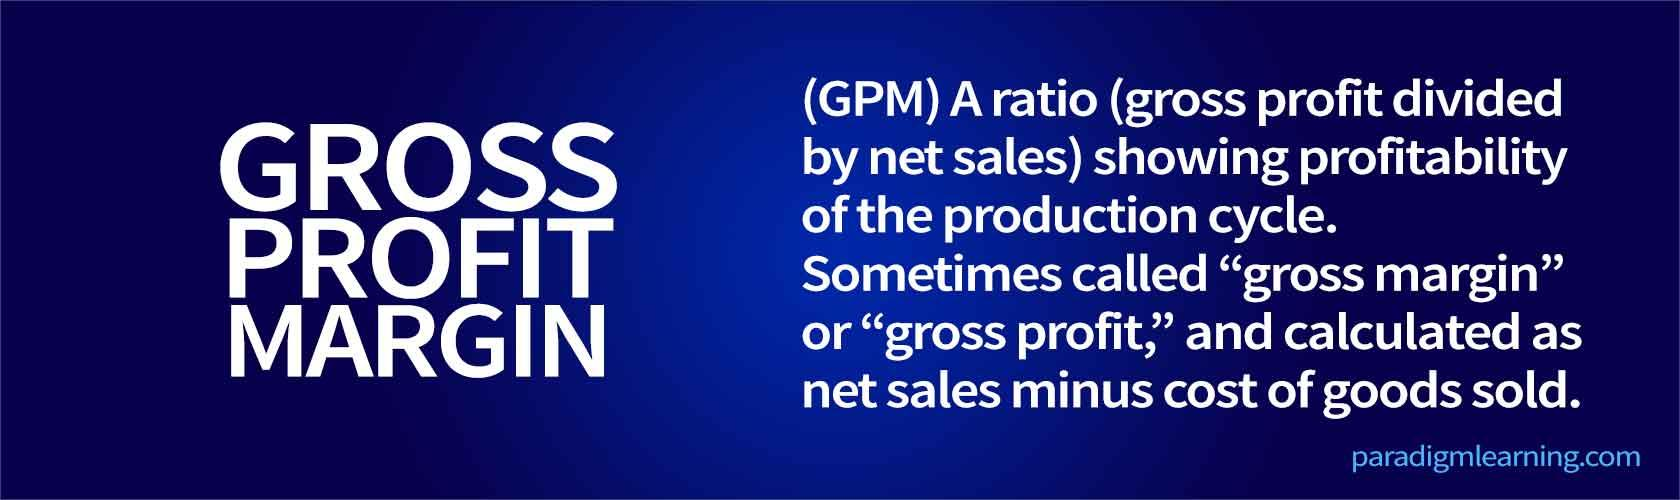 "A ratio (gross profit divided by net sales) showing profitability of the production cycle. Sometimes called ""gross margin"" or ""gross profit,"" and calculated as net sales minus cost of goods sold"